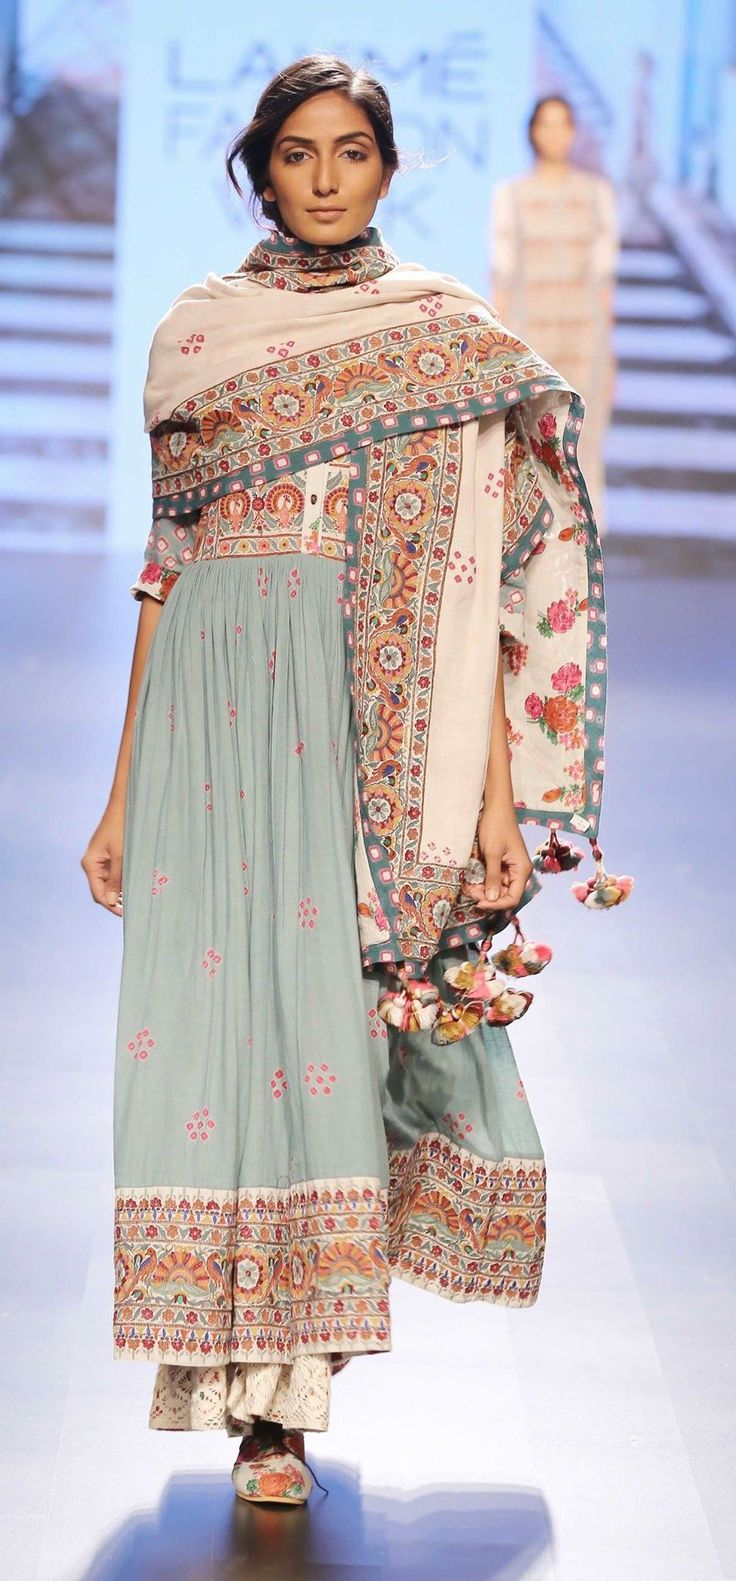 This style, the draping of the dupatta is very me.